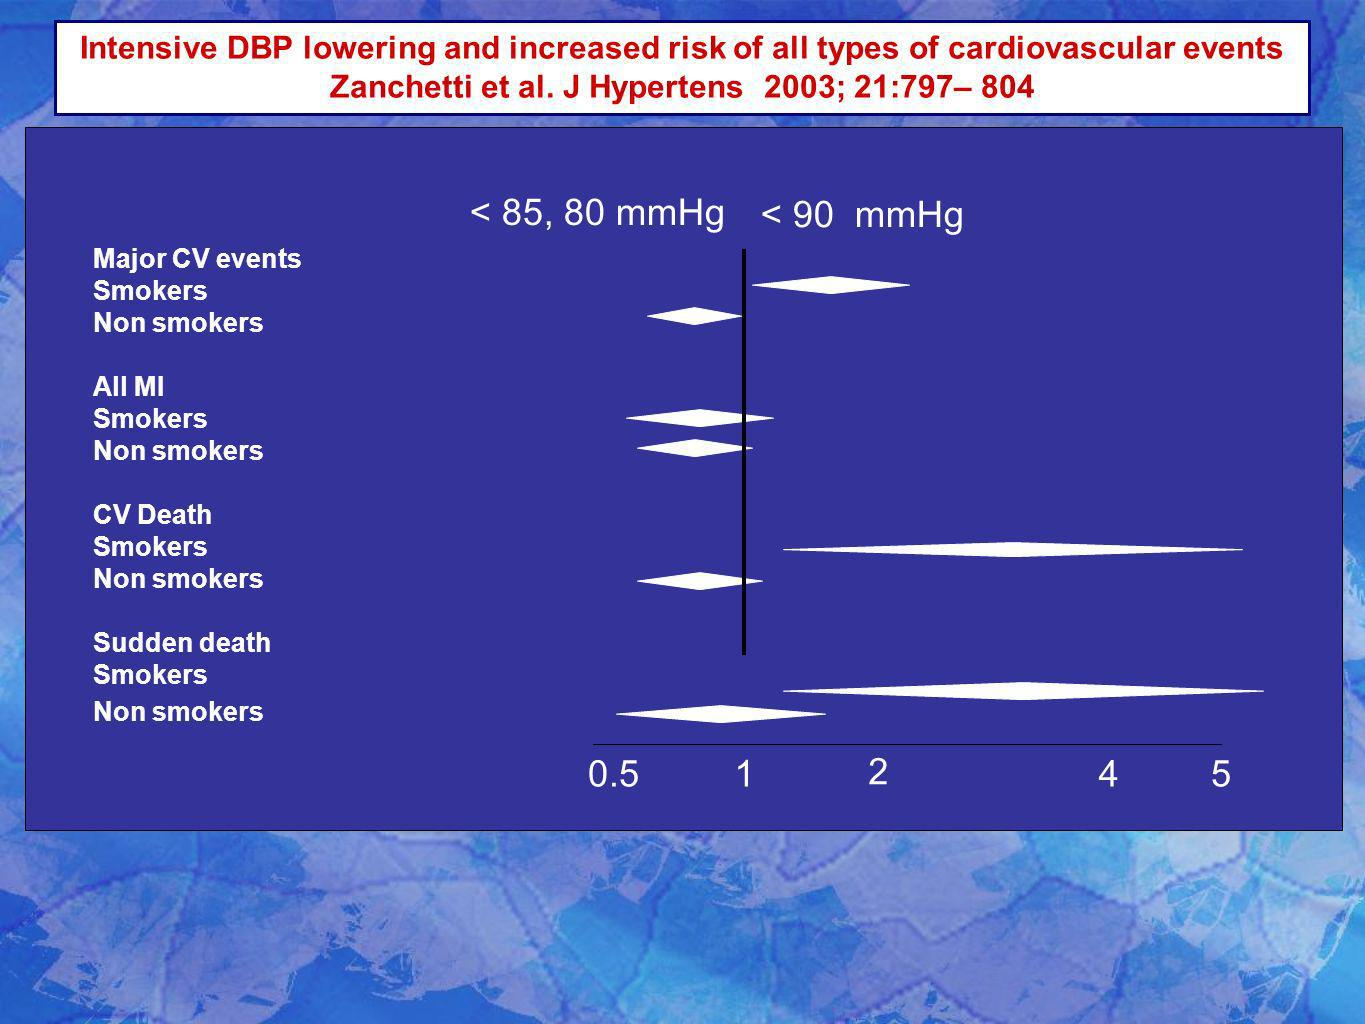 Intensive DBP lowering and increased risk of all types of cardiovascular events Zanchetti et al. J Hypertens 2003; 21:797– 804